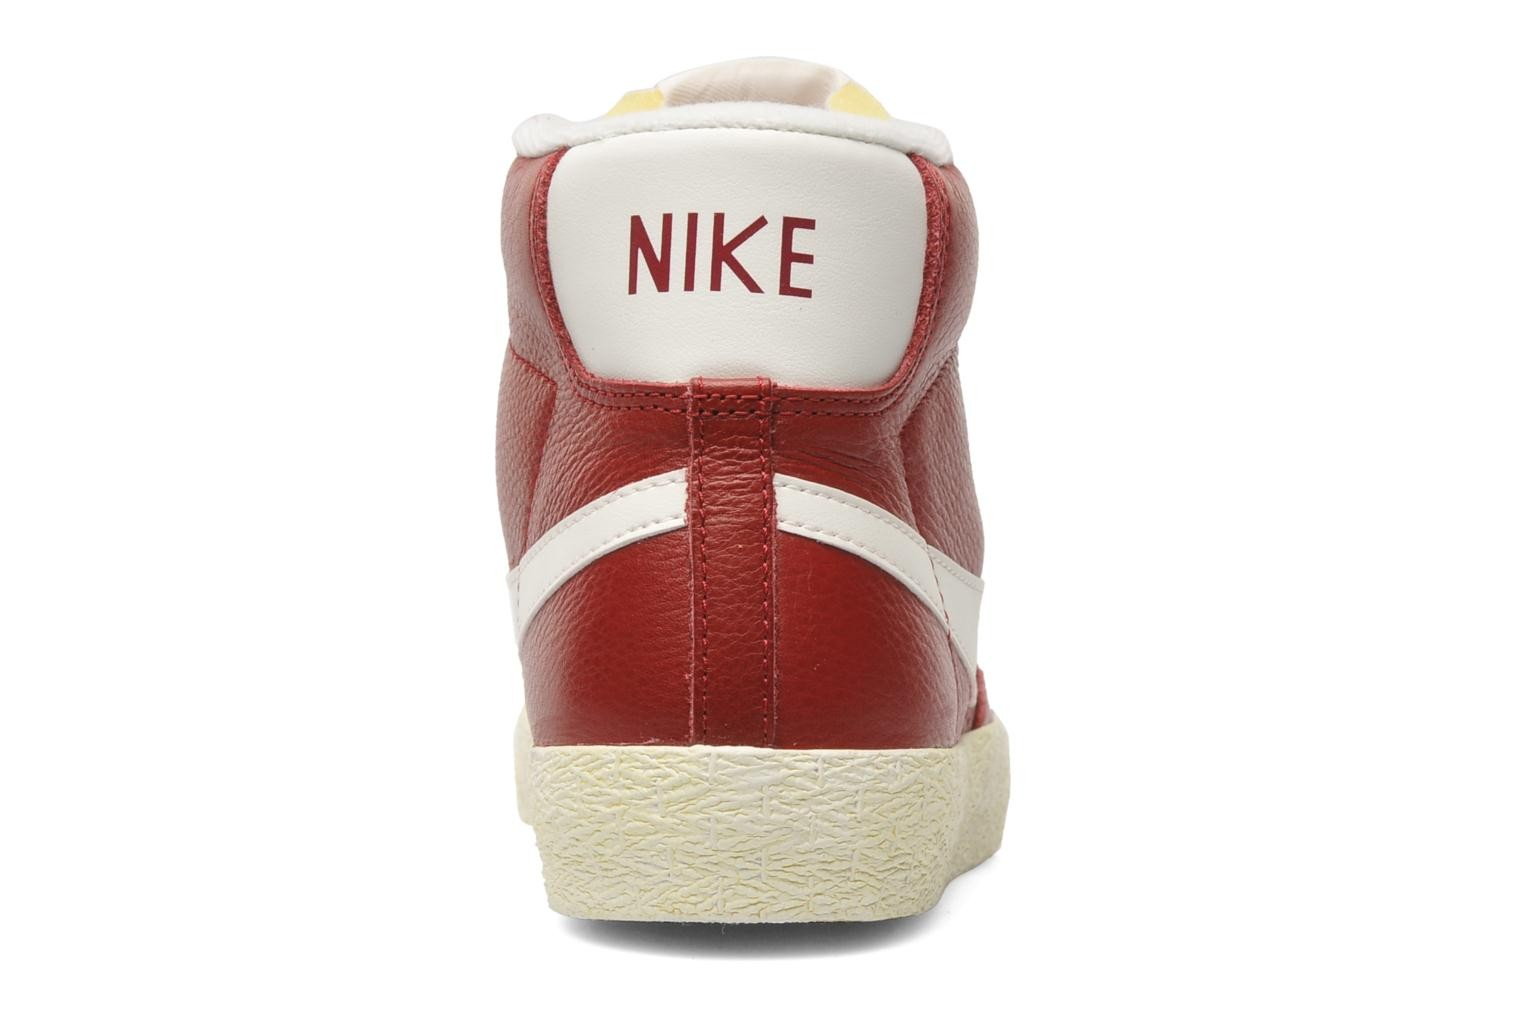 Nike WMNS Blazer Mid Leather Vintage Noble Red Sail Women's Shoe